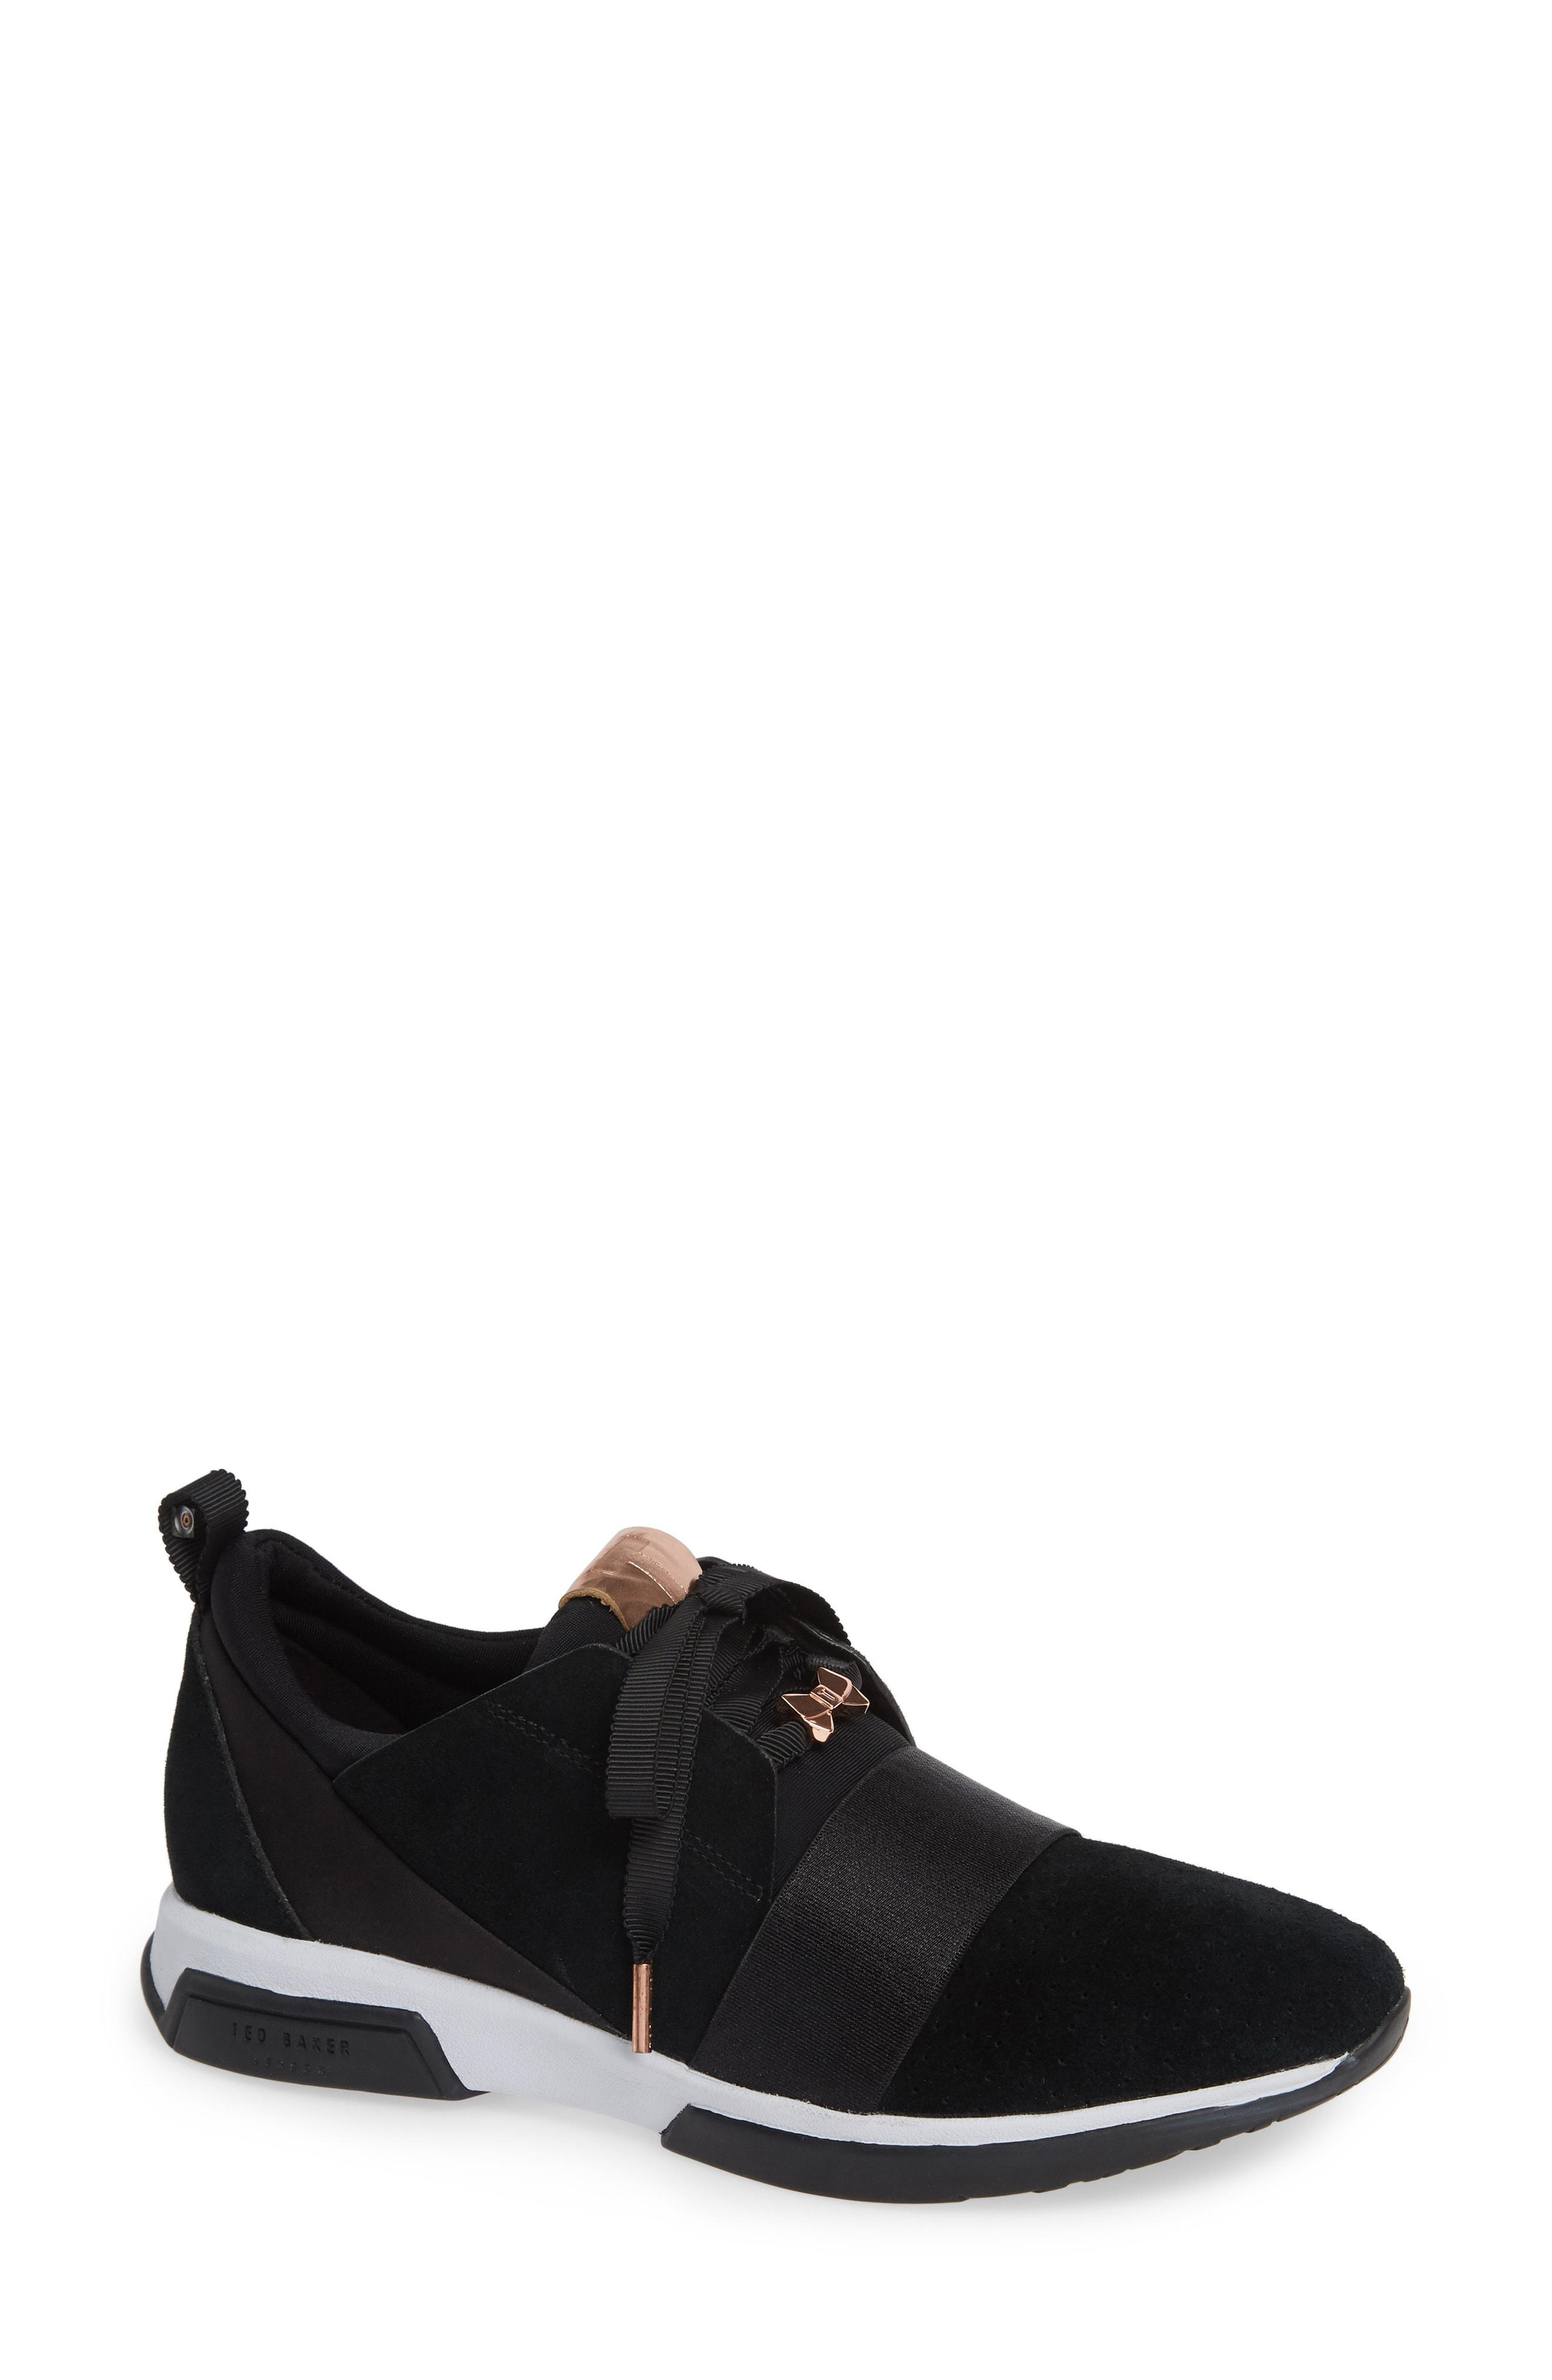 73c104c484cf24 Ted Baker - Womens Tranquility Black Cepap 2 Trainers Women s Slip-ons ( shoes). View fullscreen